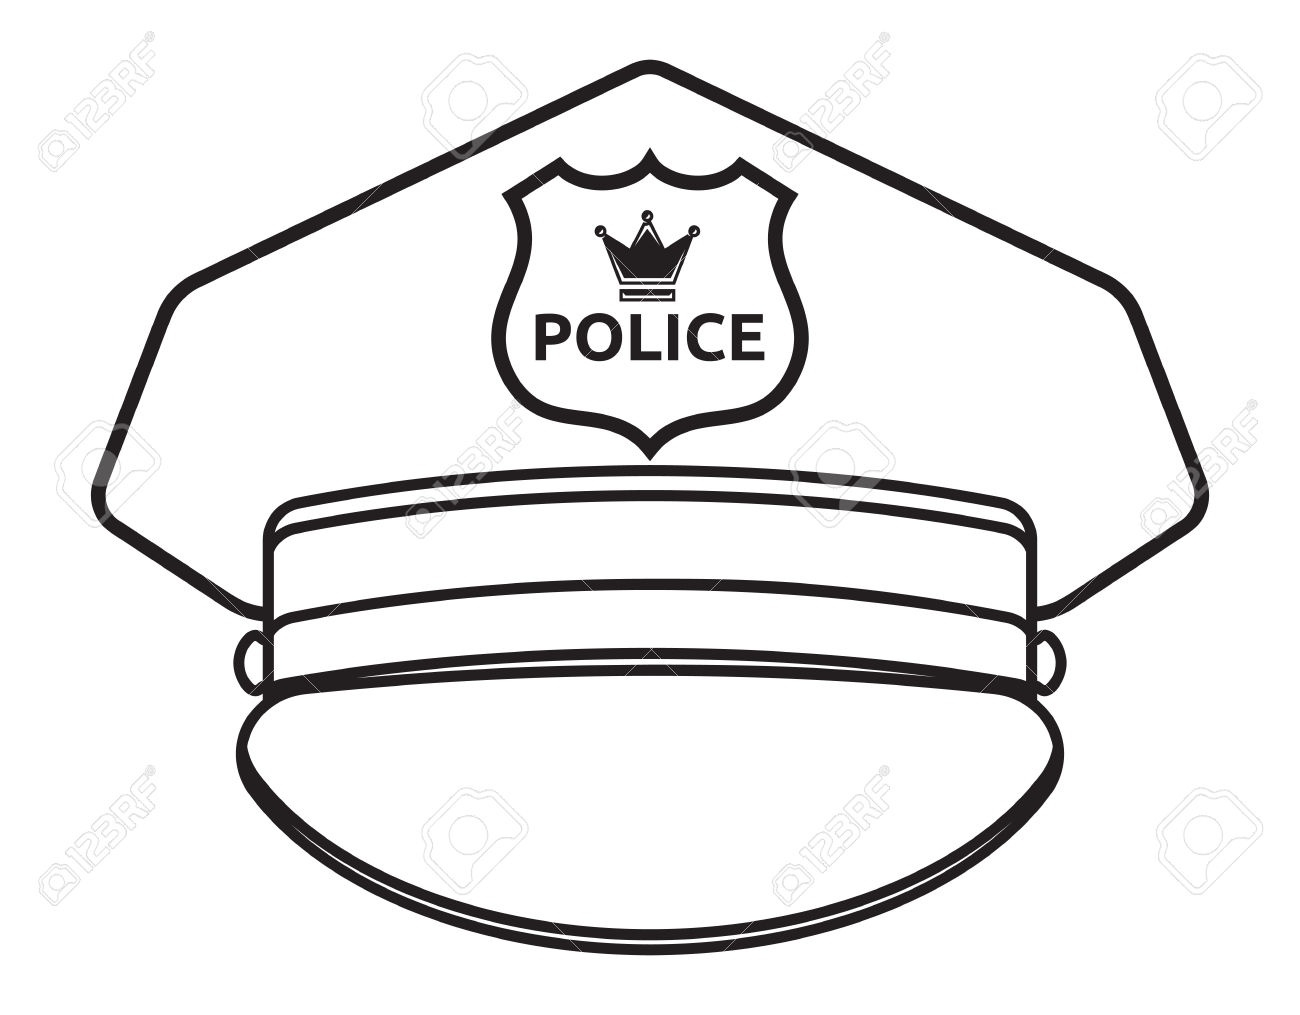 Hat Clipart Black And White | Free download best Hat Clipart Black ...